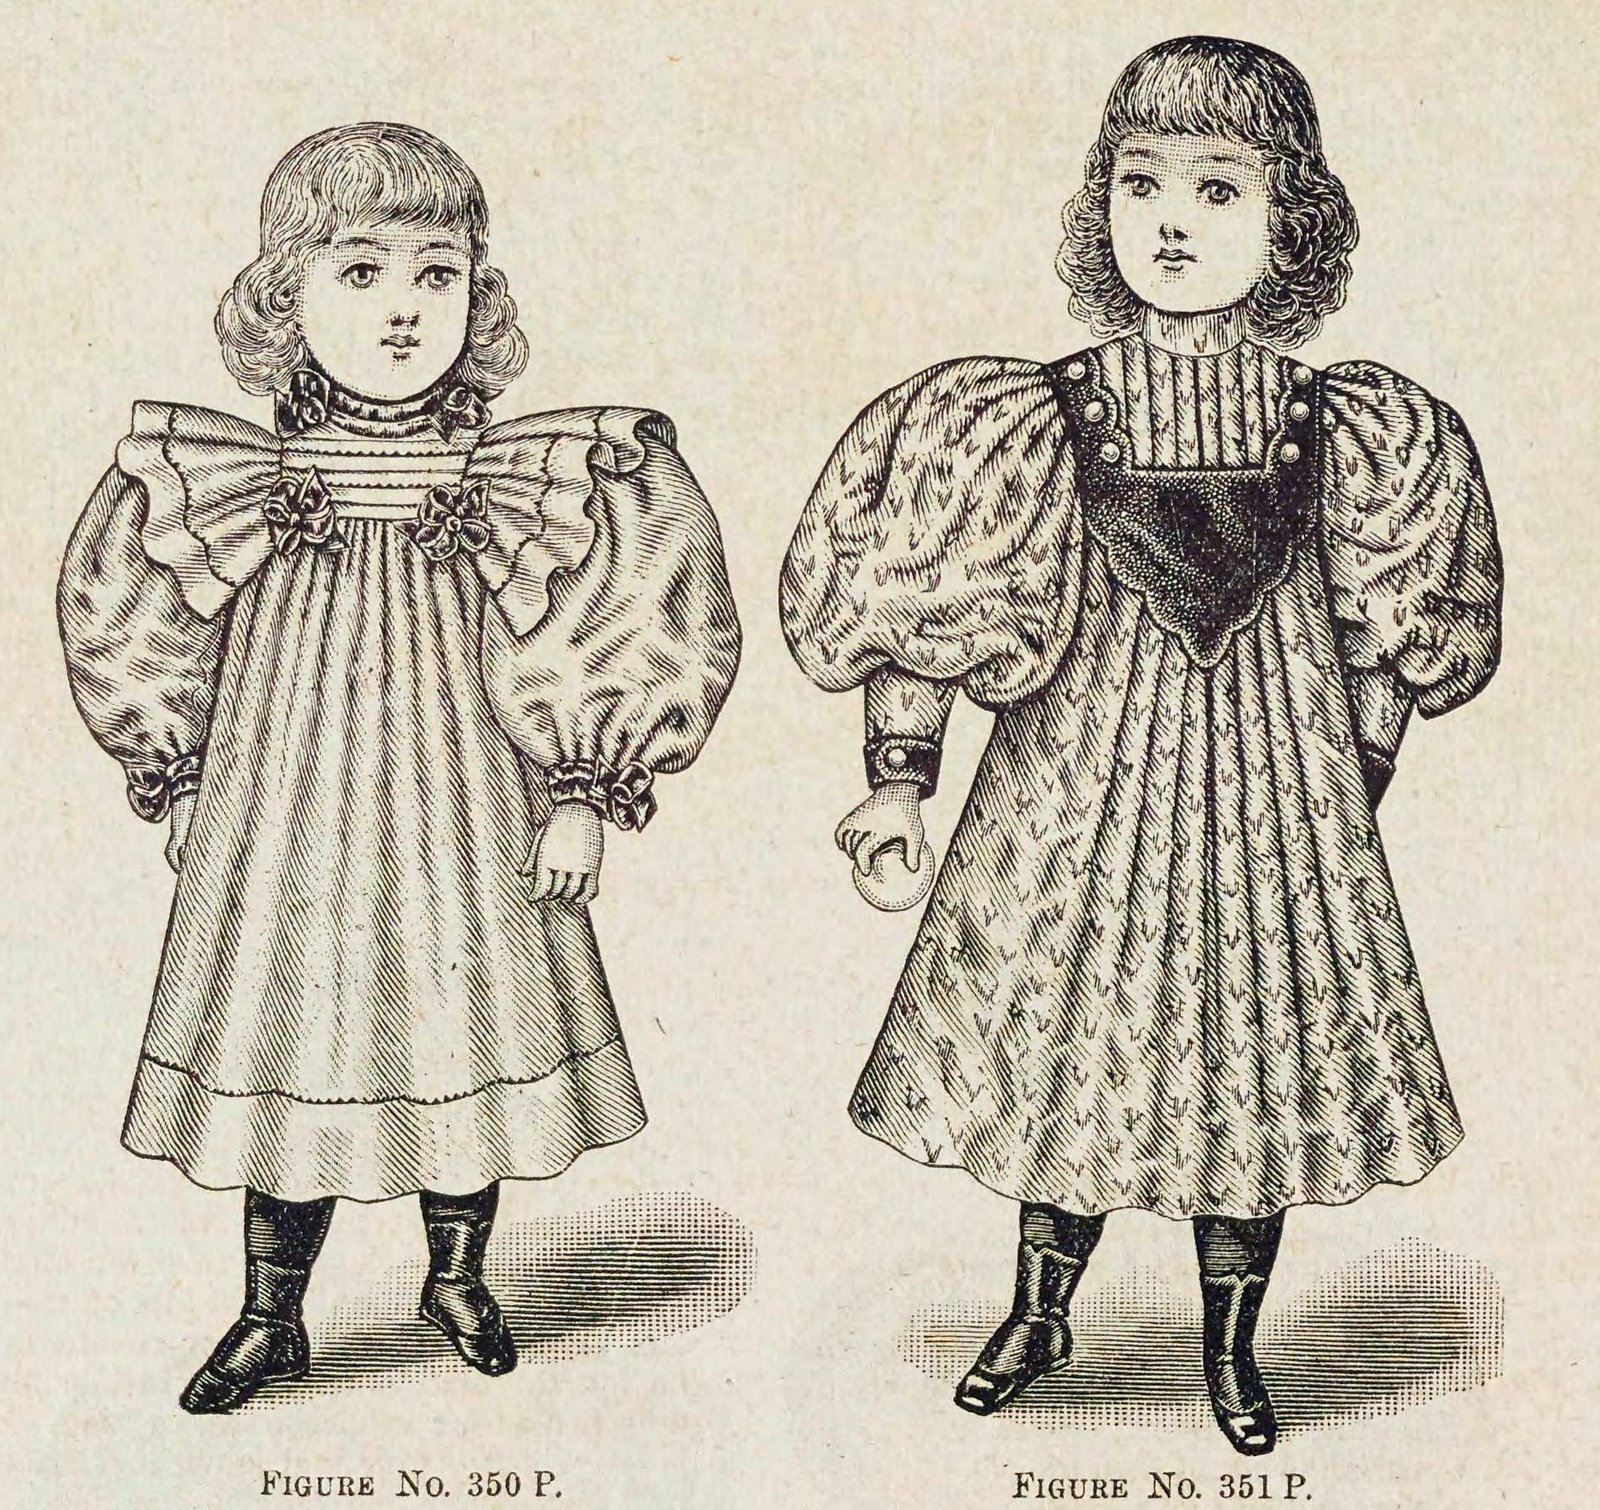 Christmas and winter fashions for Victorian-era girls in the late 1890s (1)